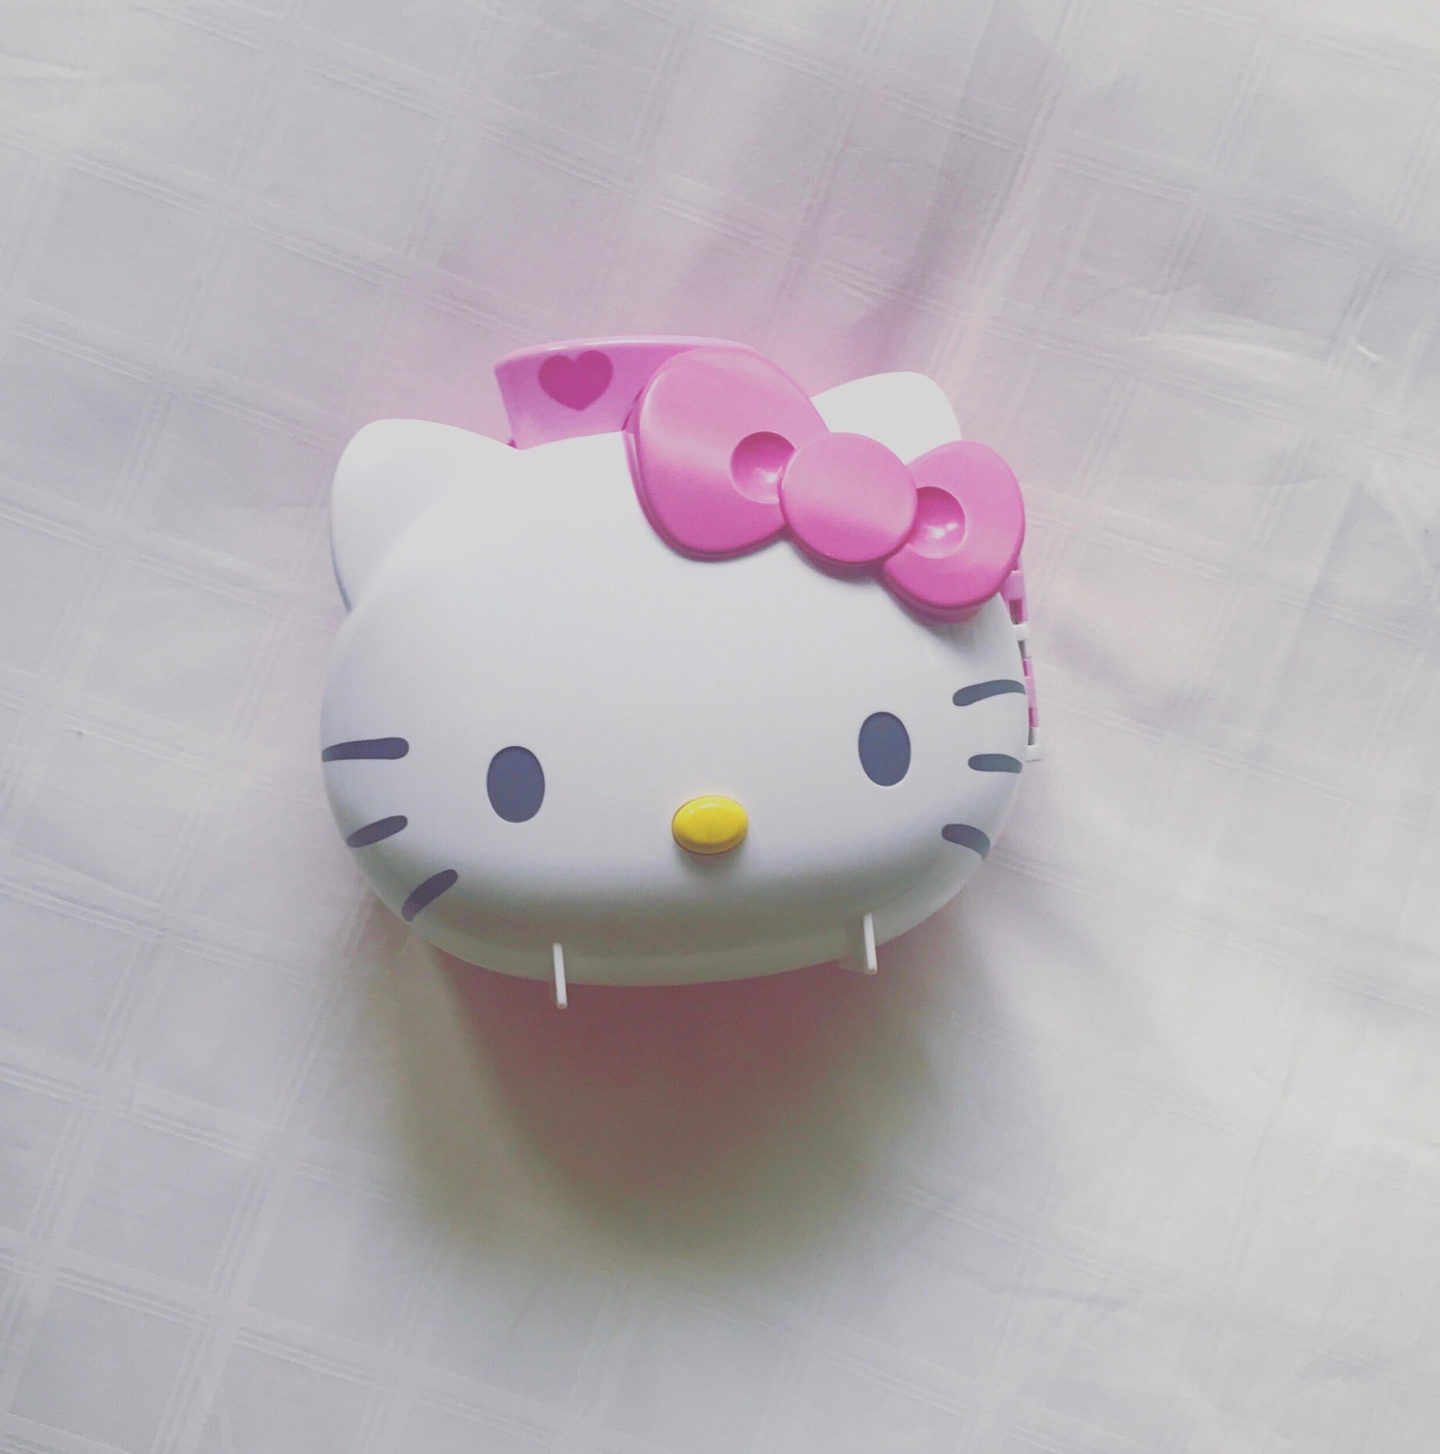 It cost approximately 2000 yen on Amazon Japan. It s available on US Amazon  too but for double the price. It s also at some Sanrio stores 81c944f86a3b3